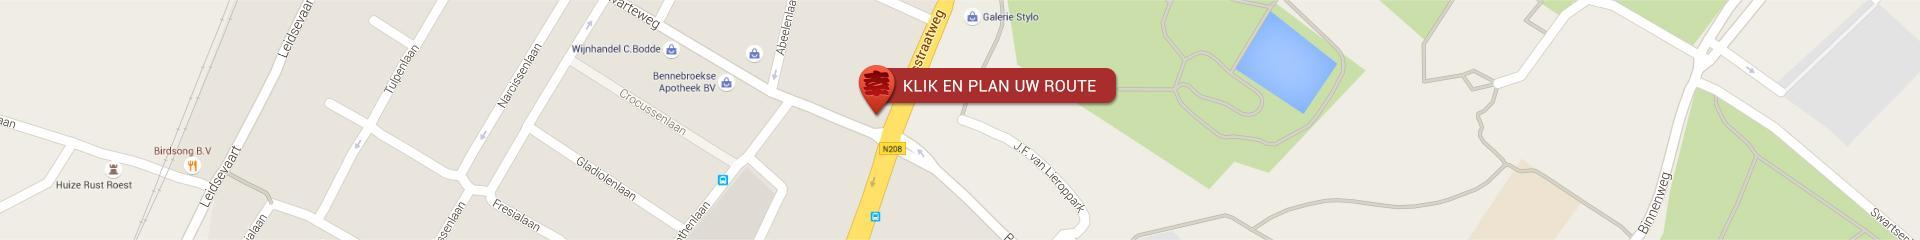 Plan uw route Zen Restaurant